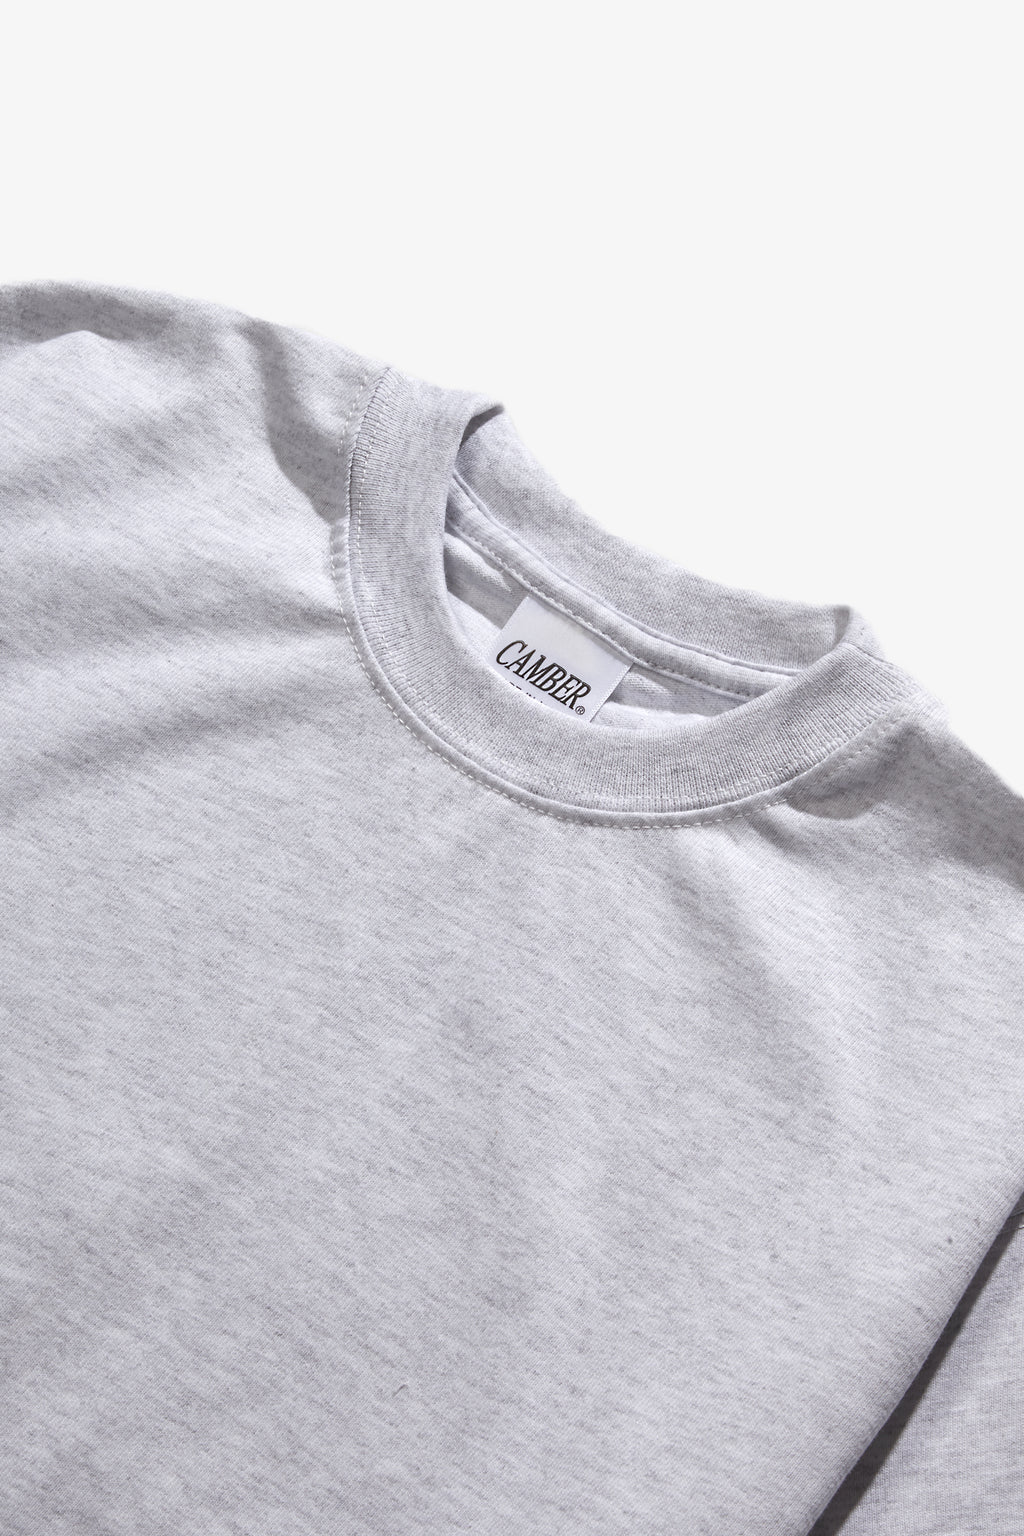 Camber USA - 301 8oz Tee - Ash Grey